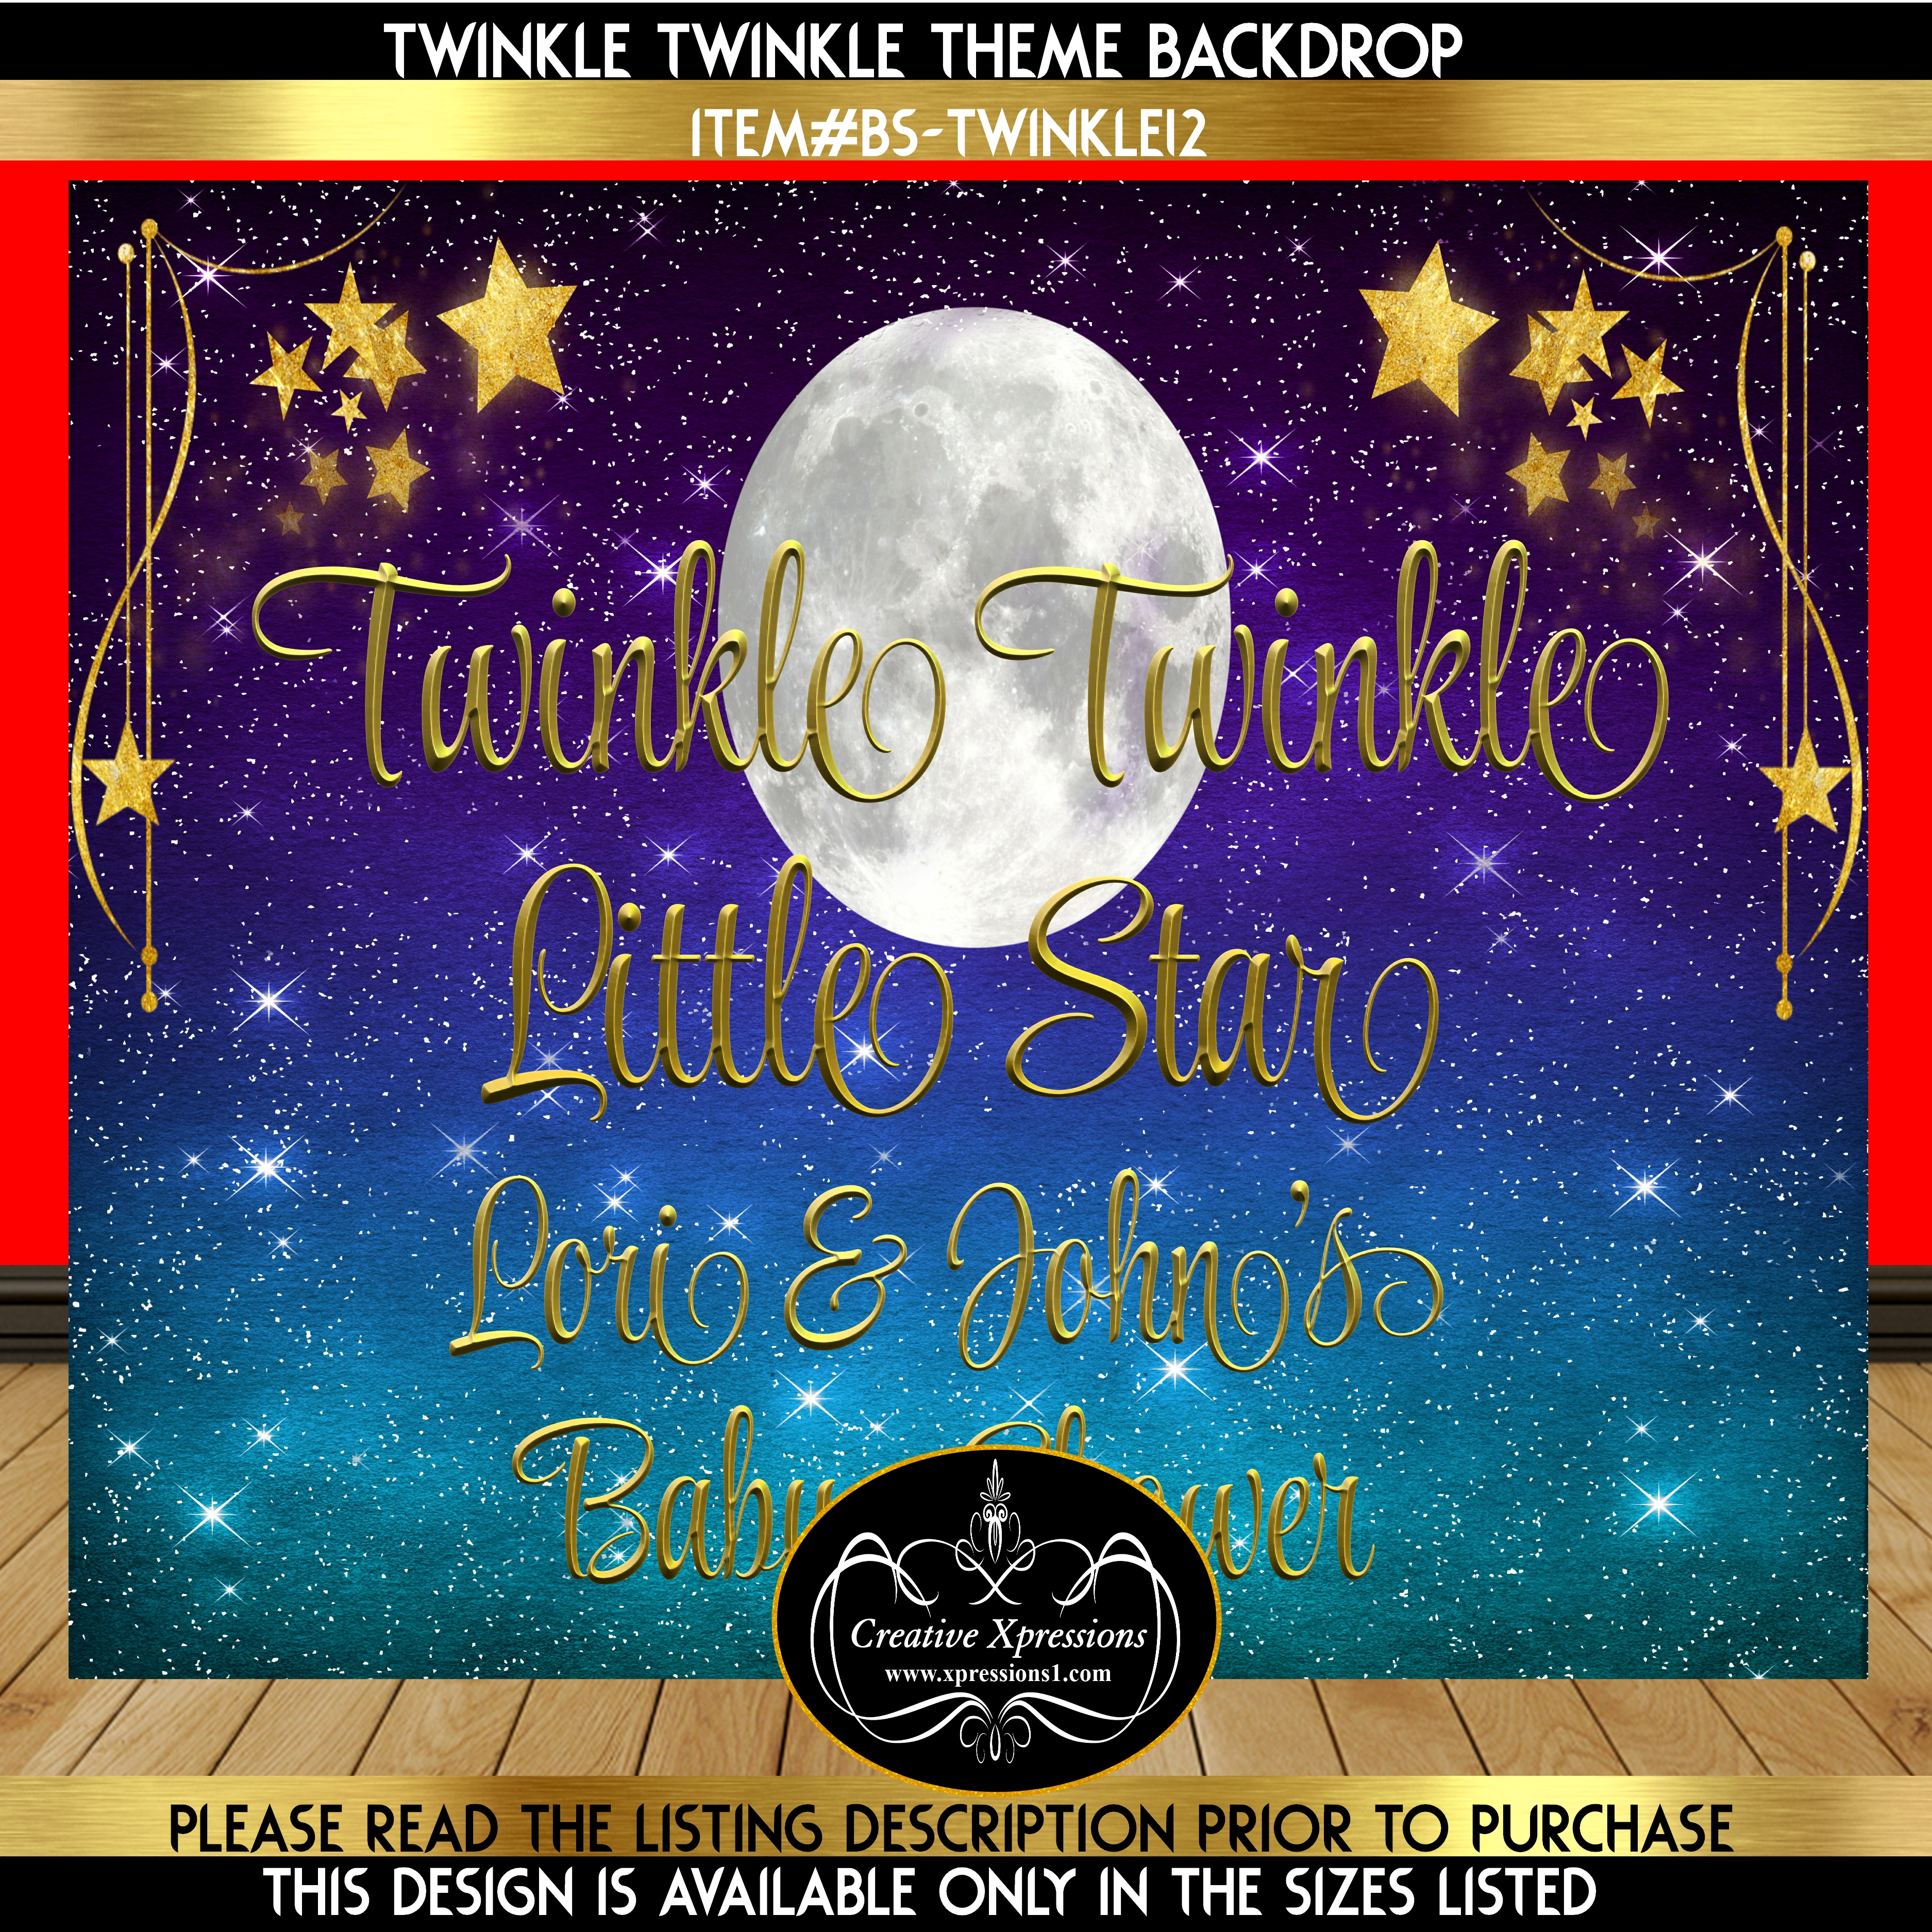 Twinkle Twinkle Moonlight Backdrop